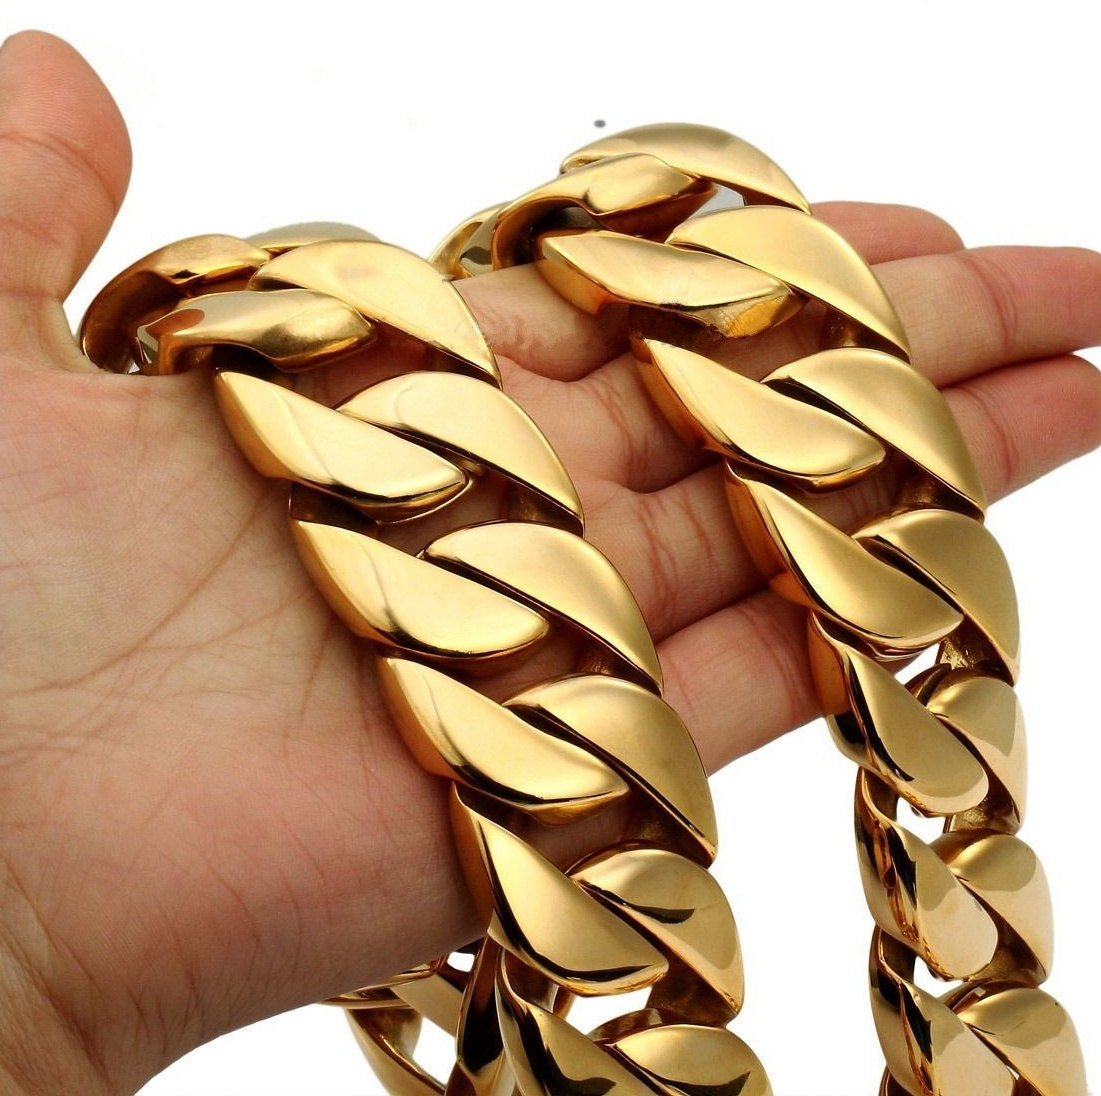 32mm Chunky Massive Miami Cuban Link Chain Necklace Heavy